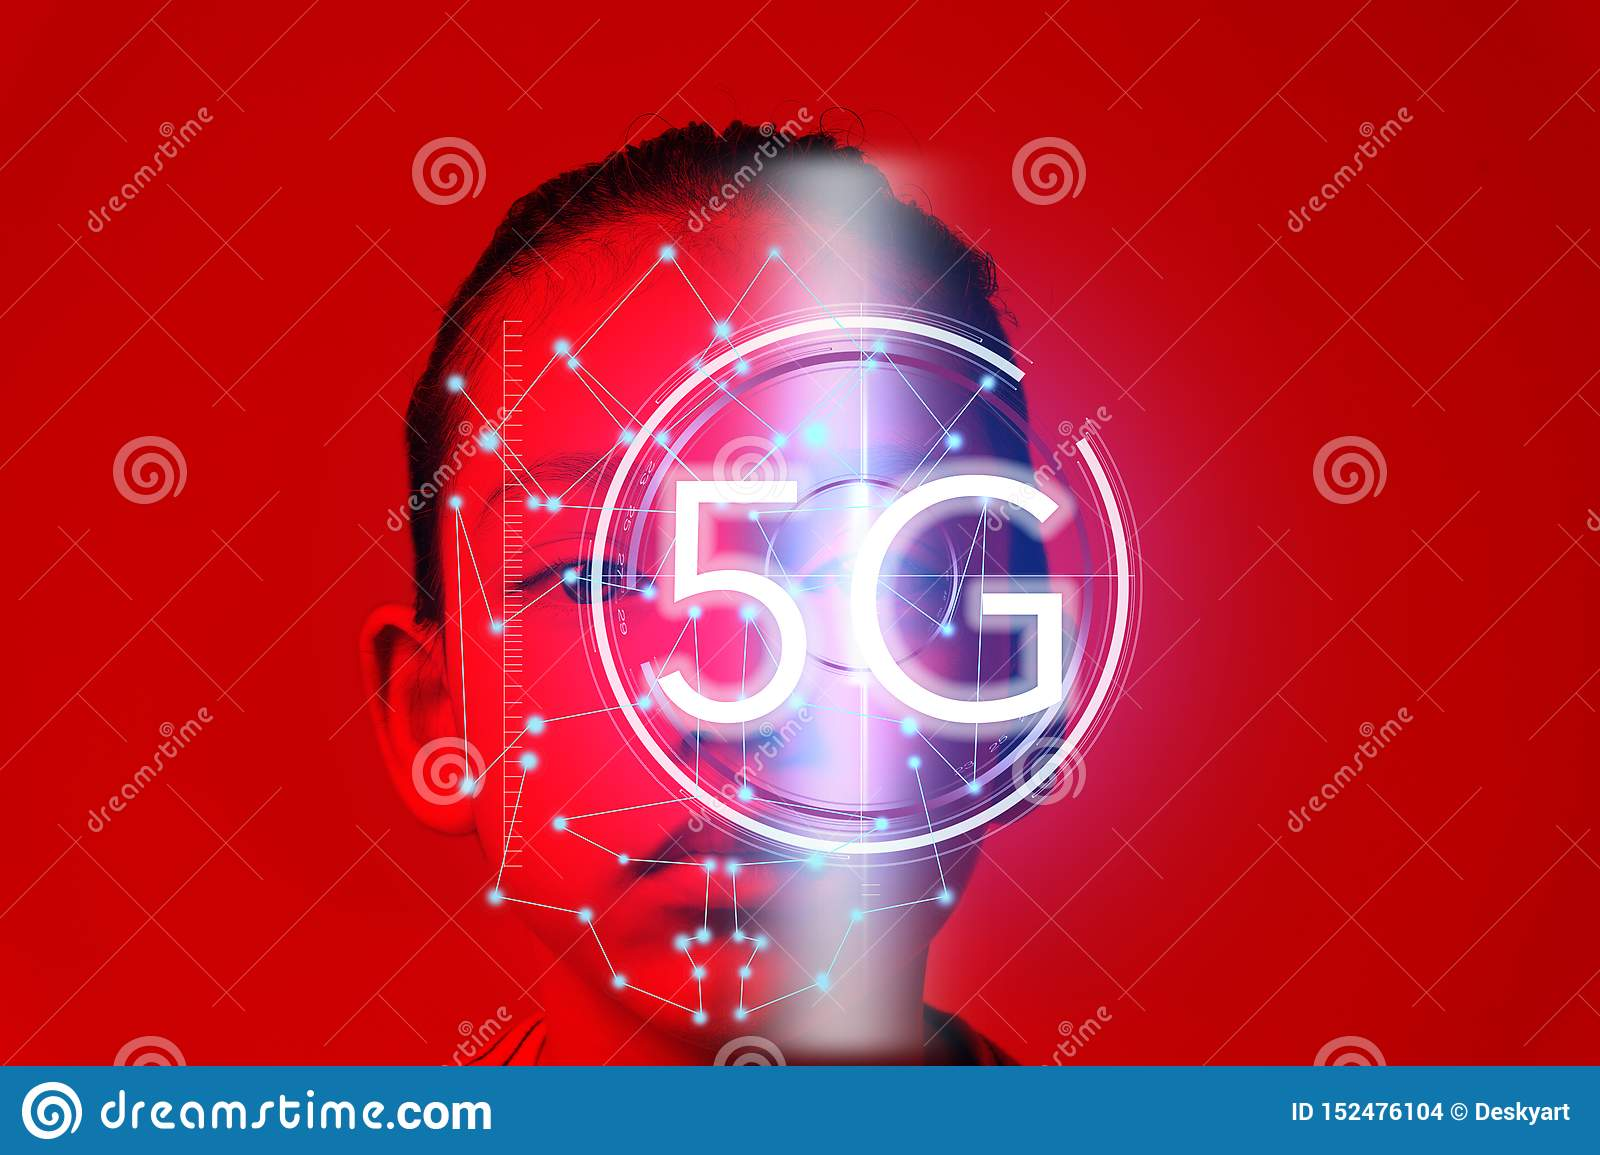 Eye recognition technology on new cyber technology 5G wireless internet wifi connection, isolated on future concept in global